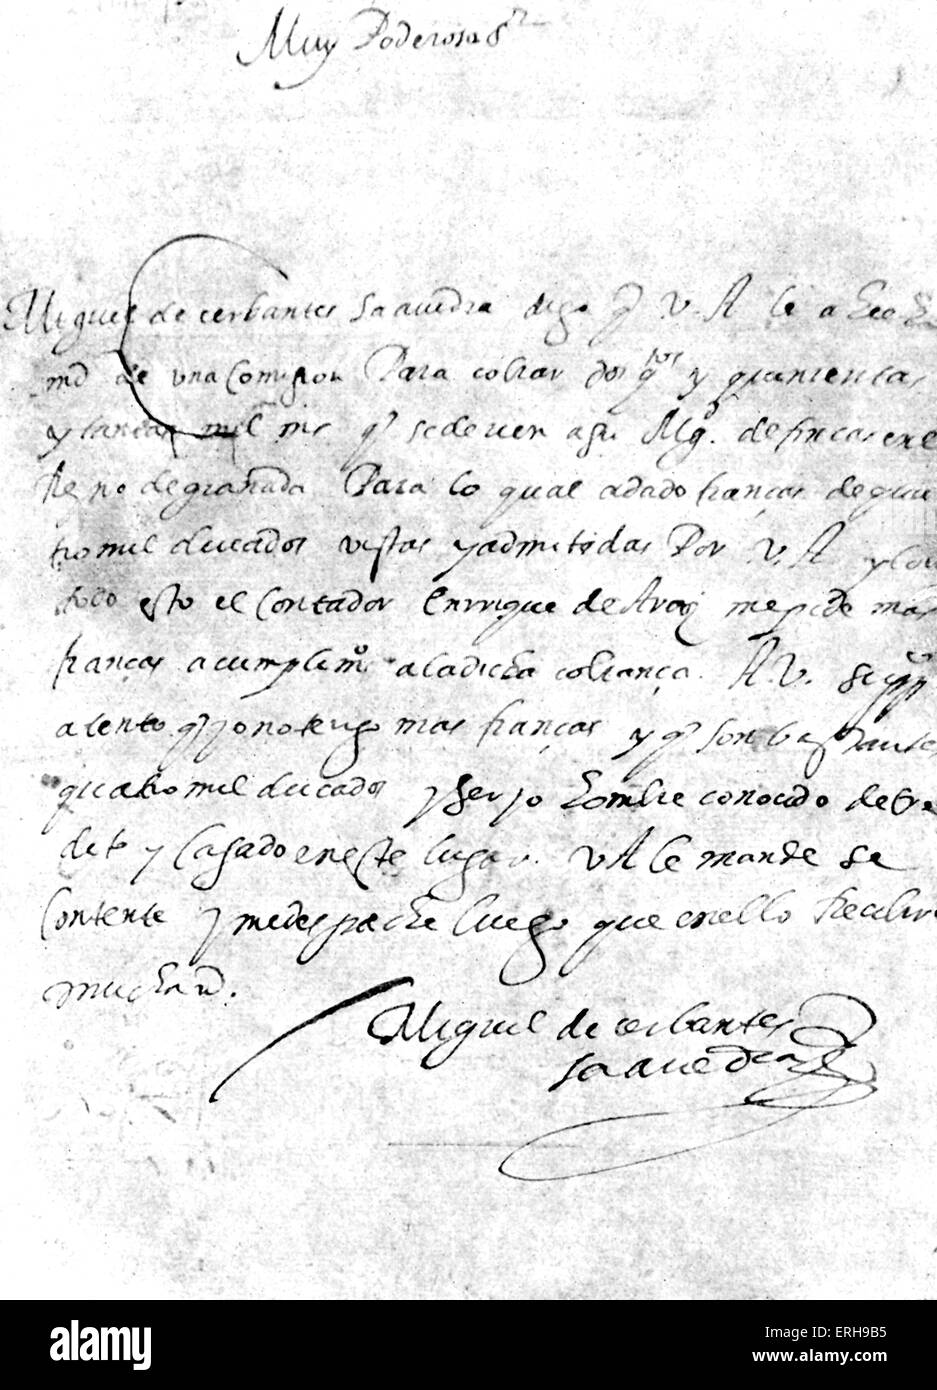 letter by miguel de cervantes handwritten spanish novelist poet and playwright 29